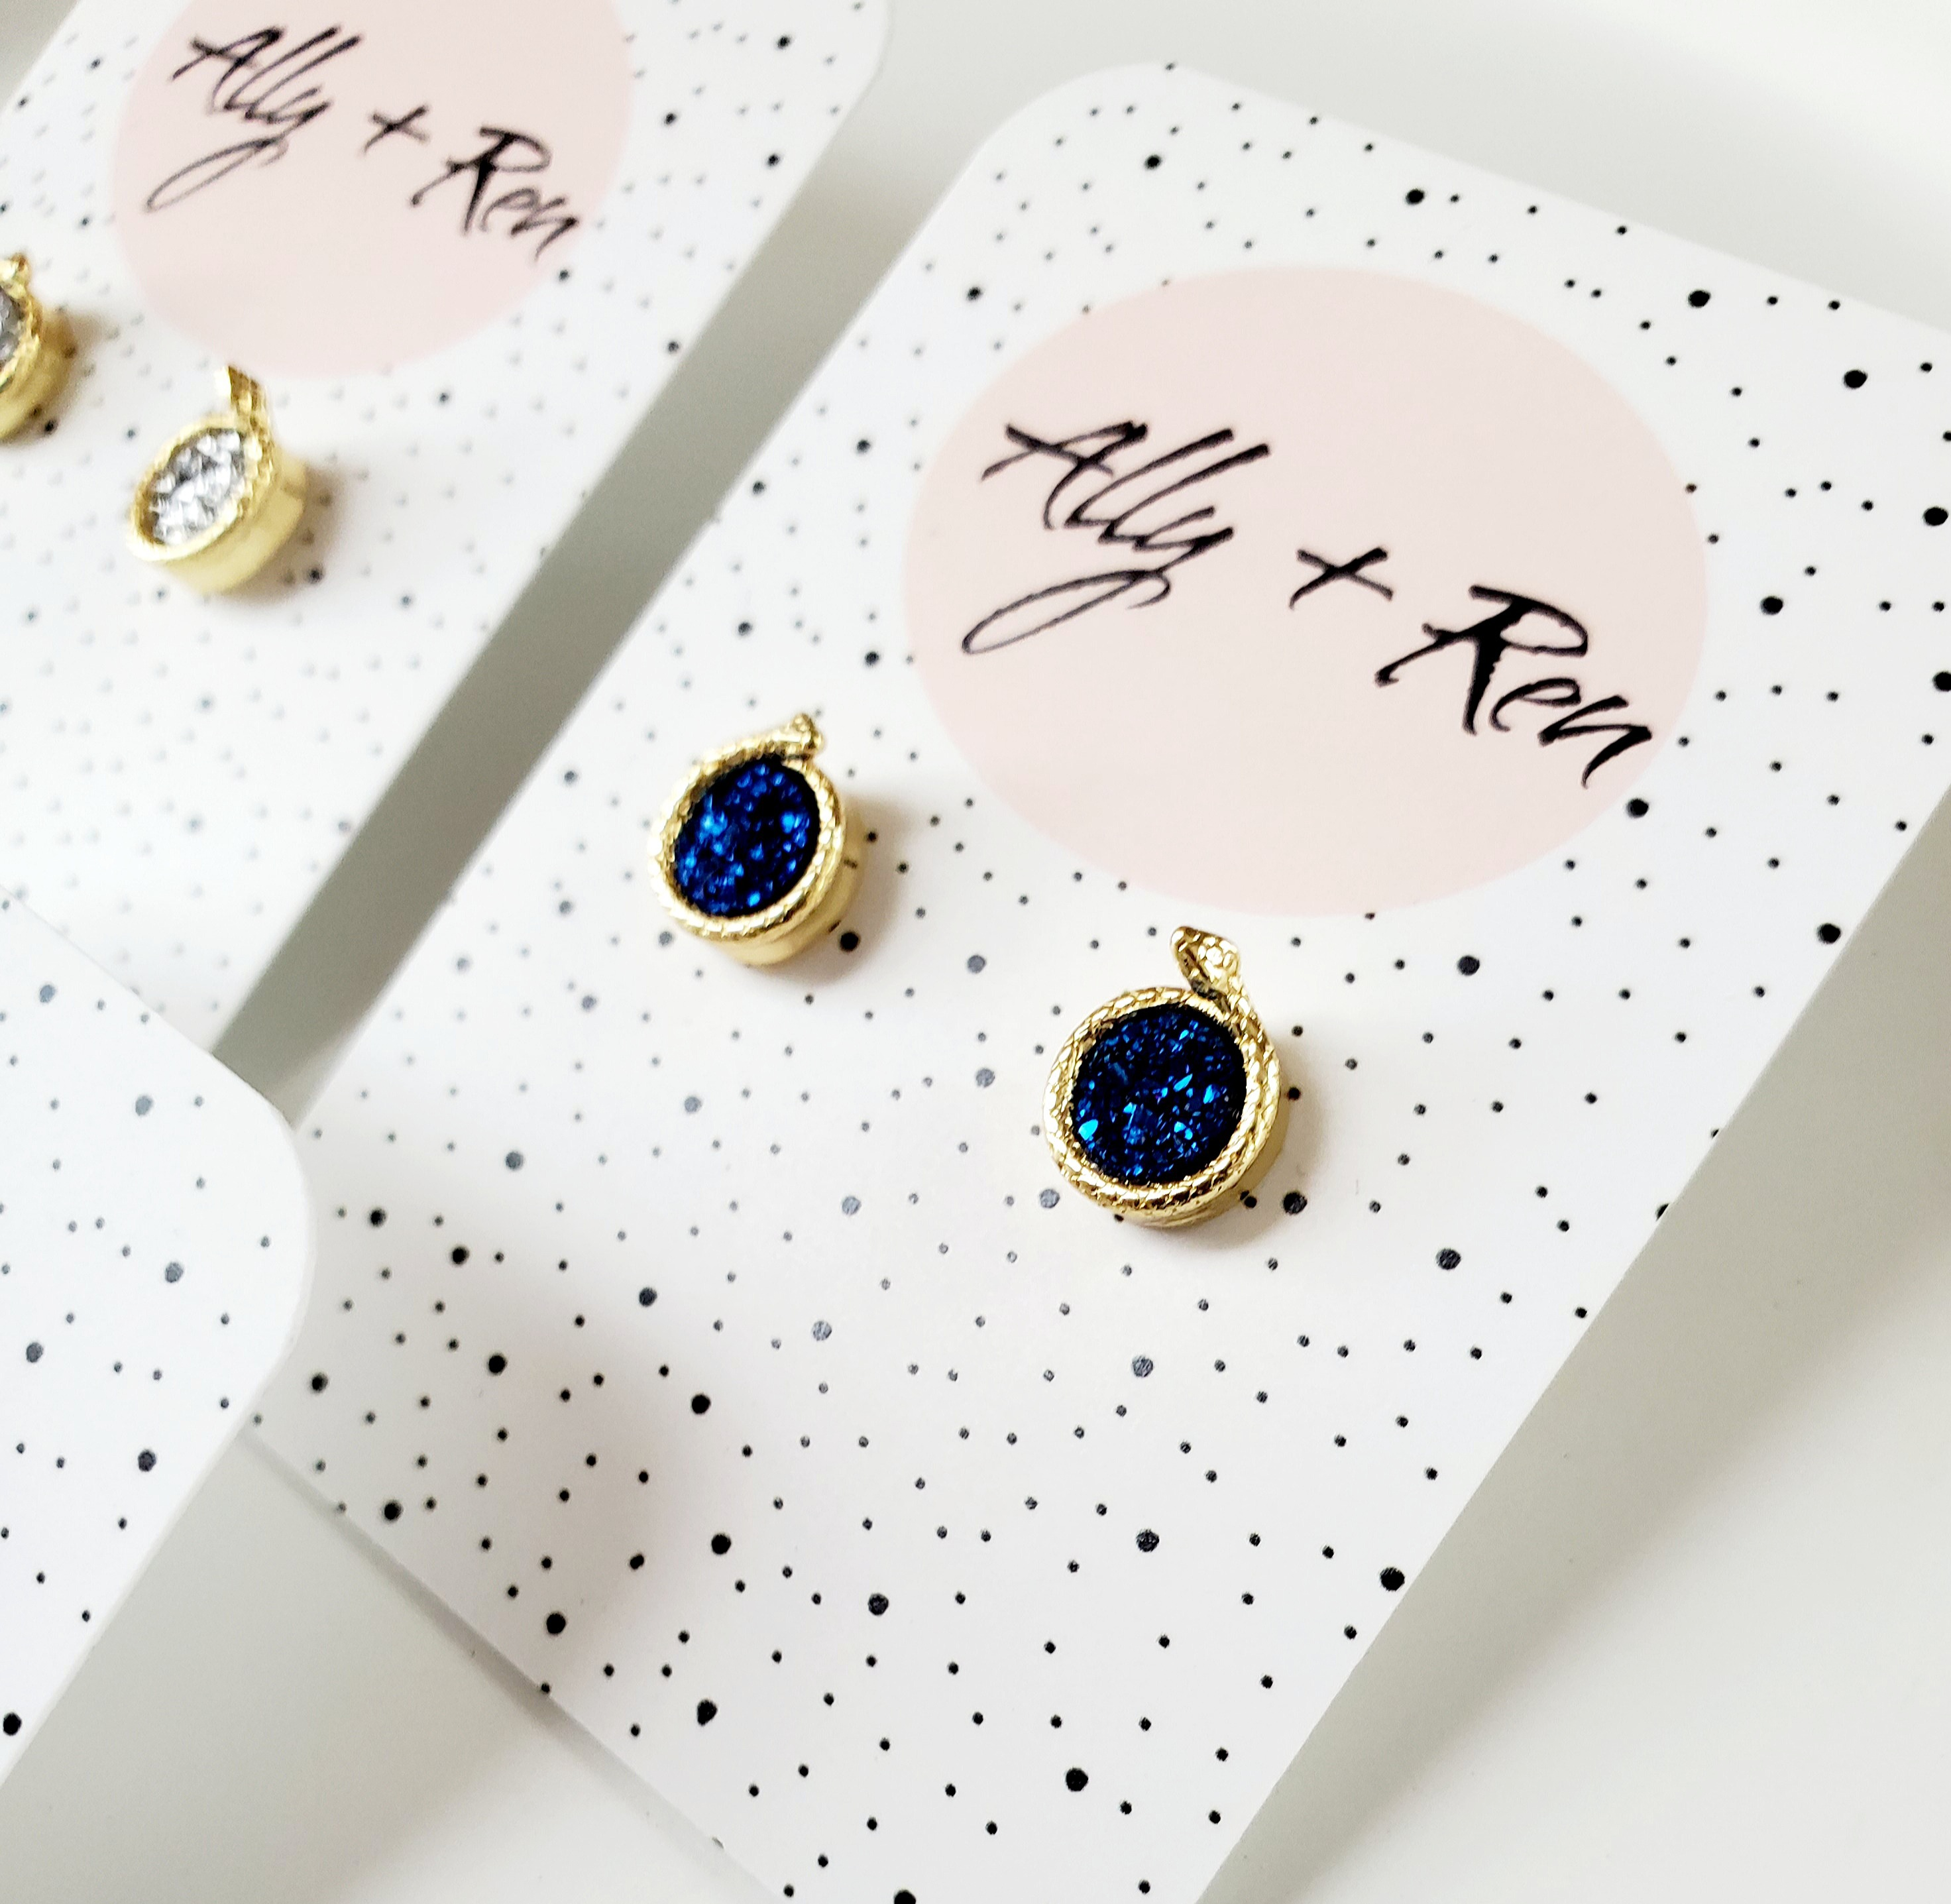 2 pairs of navy and clear crystal druzy studs